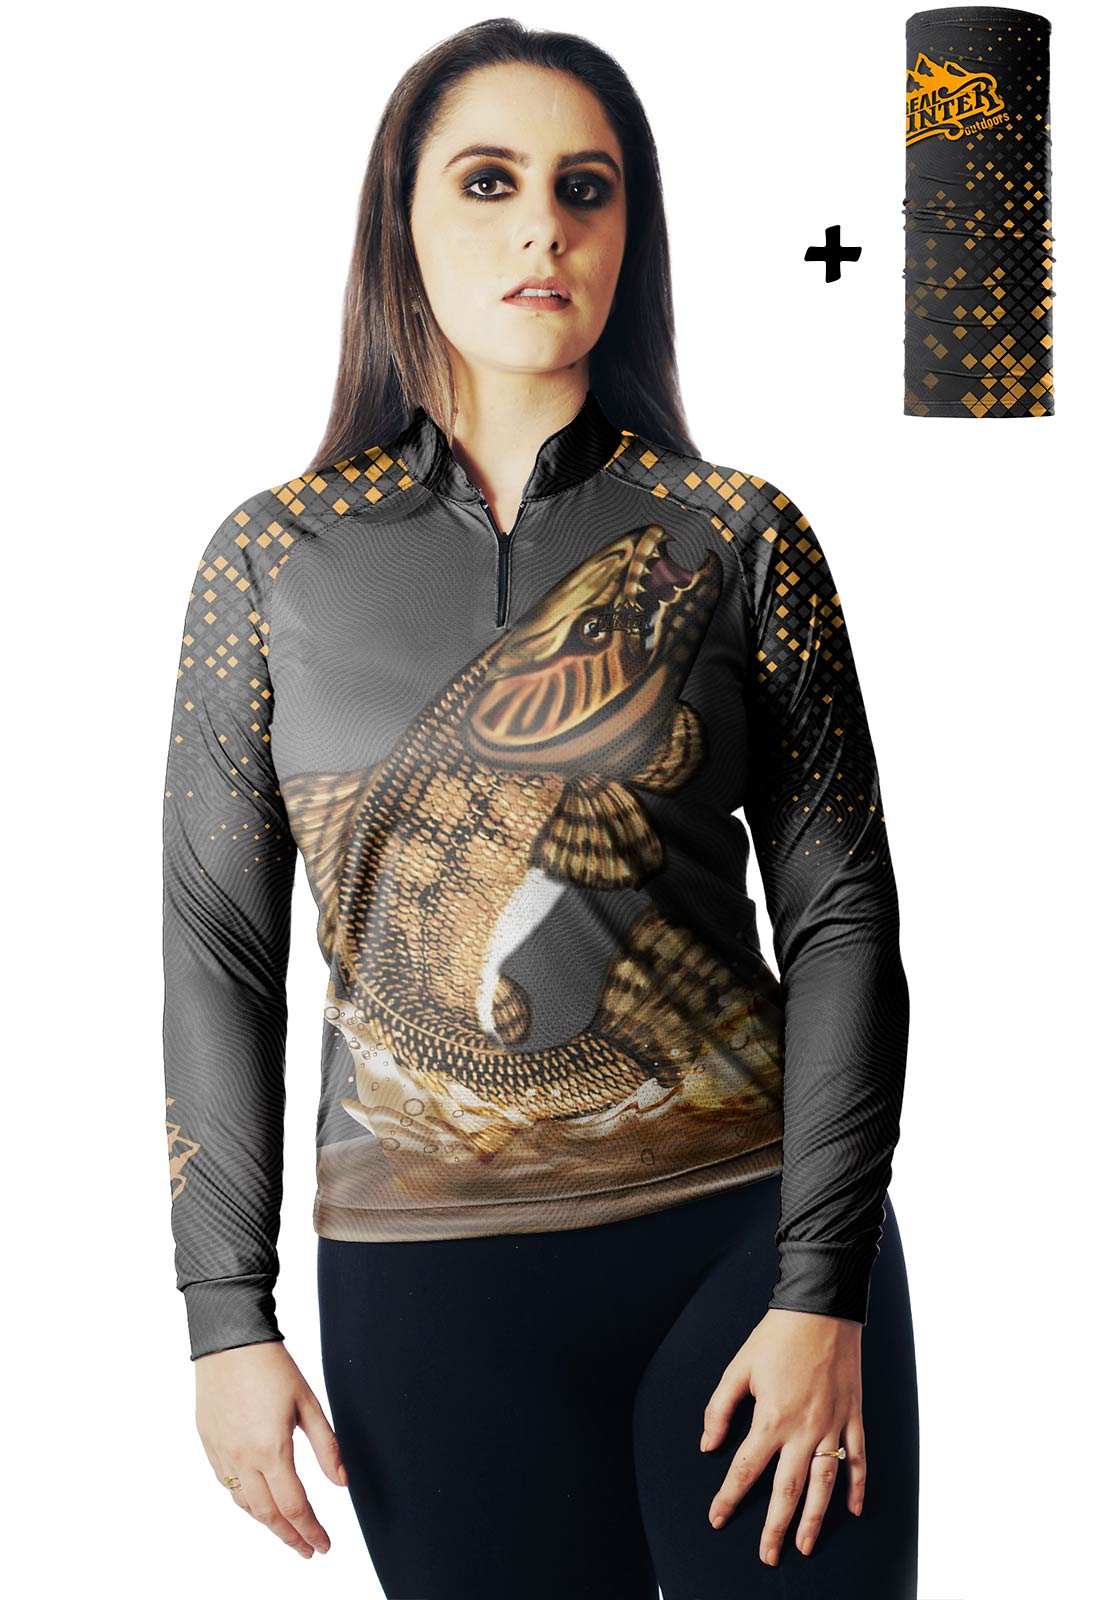 CAMISA DE PESCA FISH TRAÍRA 01 FEMININA + BANDANA GRÁTIS - REAL HUNTER OUTDOORS